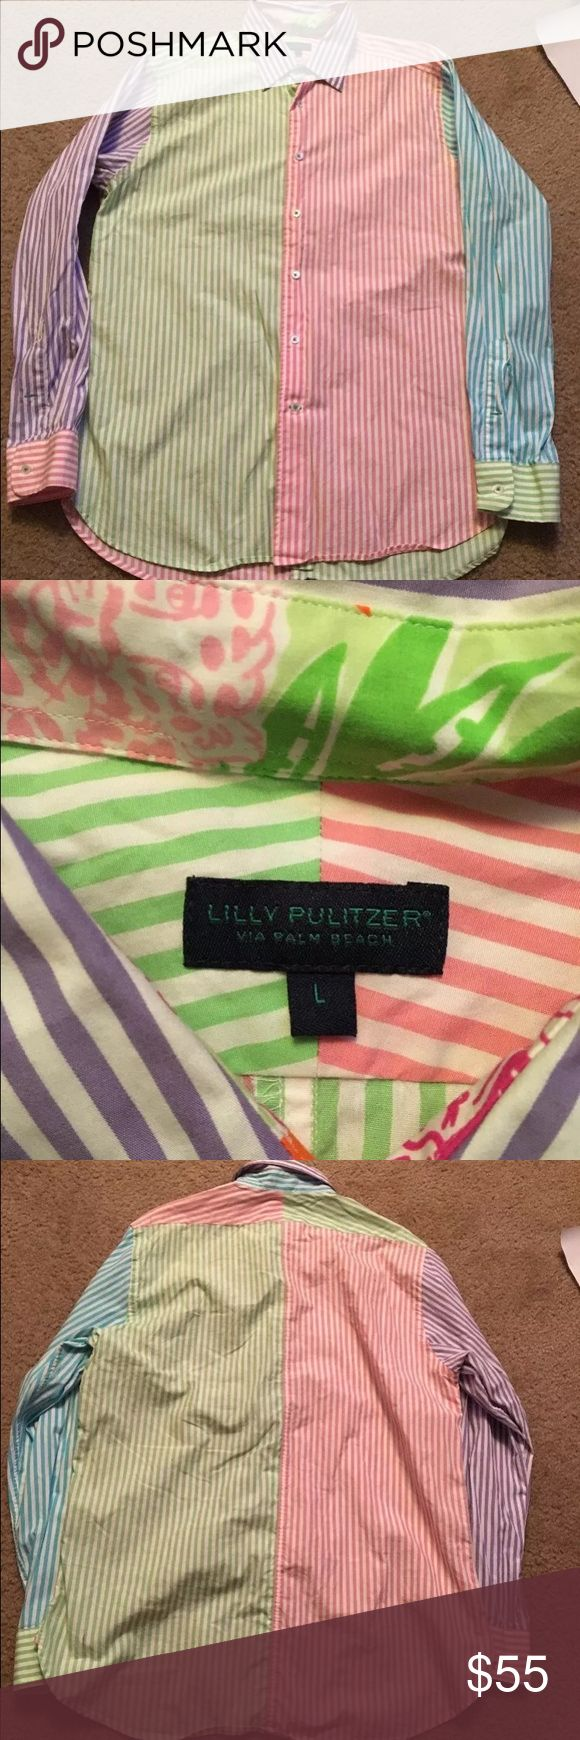 LILLY PULITZER Pastel Multicolor  Via Palm Beach Item: Used Men's LILLY PULITZER Xl Shirt Pastel Multicolor L unisex Unique Via Palm Beach  Measurements (approx. in inches) Pit to pit 24 Top to bottom 29 Cuff to pit 22 Lilly Pulitzer Shirts Dress Shirts